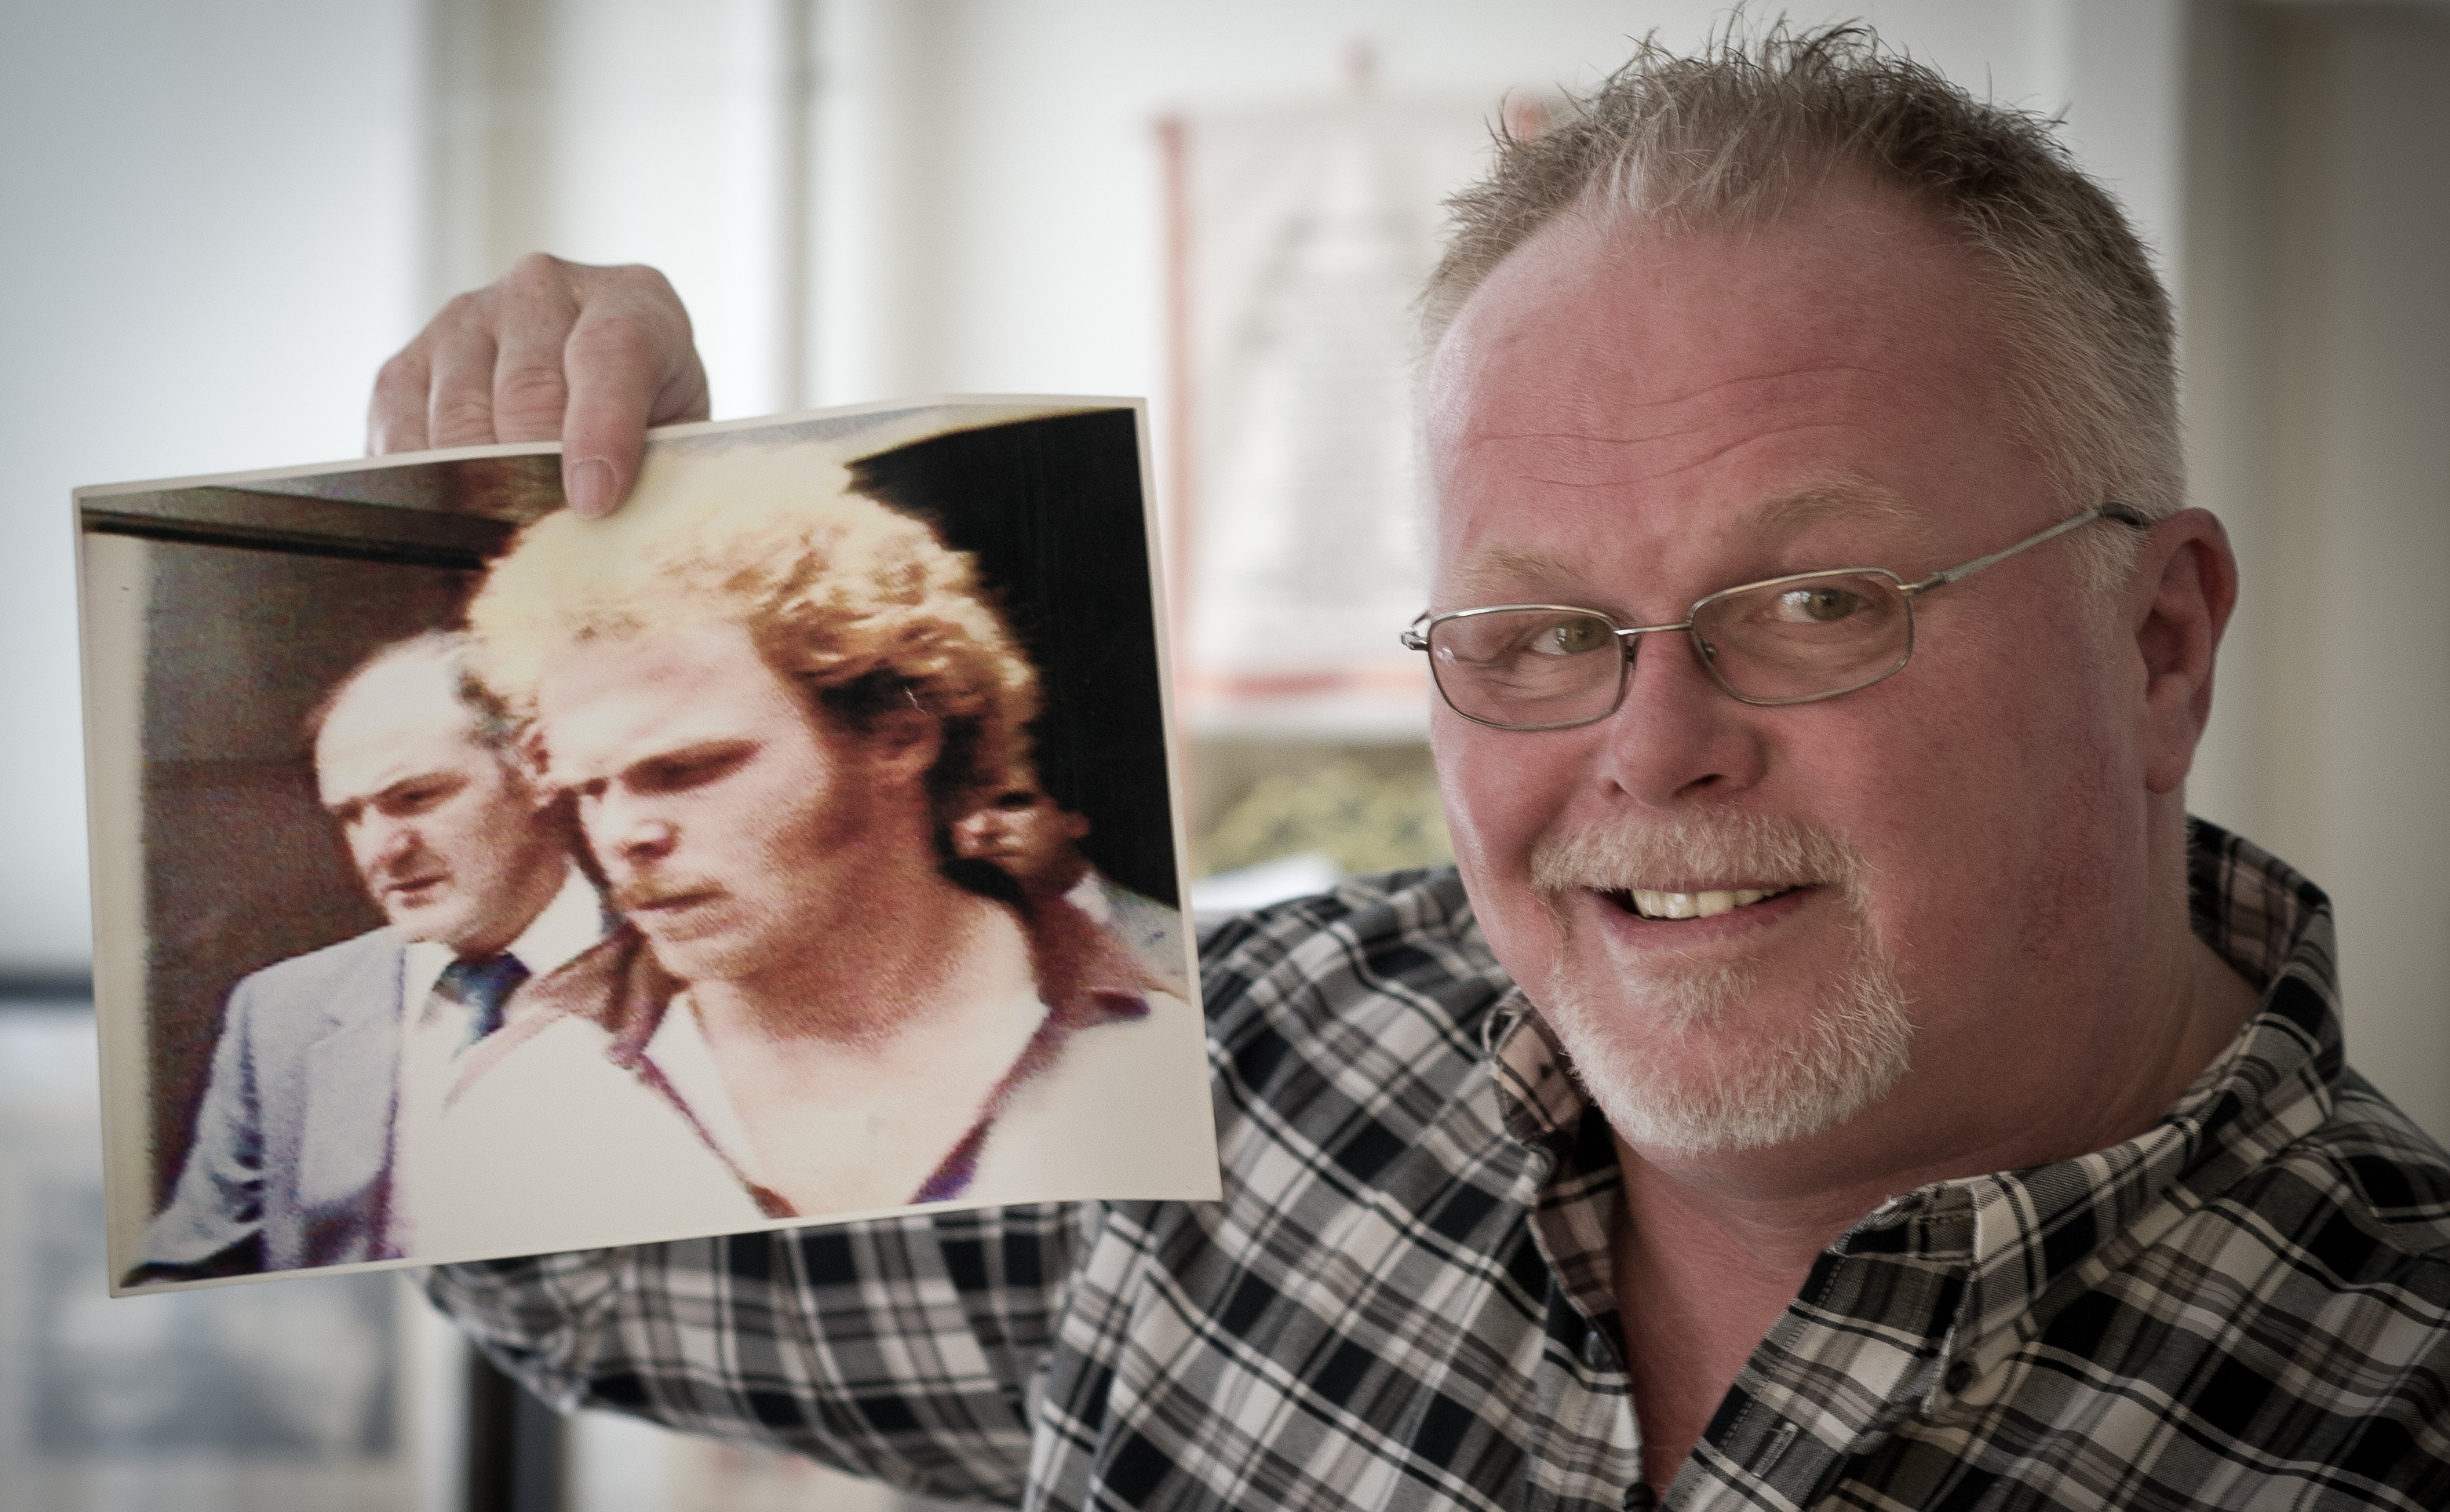 Kirk Bloodsworth was the first person in the U.S. to be exonerated by DNA evidence after receiving the death sentence. Convicted in 1985 of the rape and murder of a young girl, he was released in 1993.